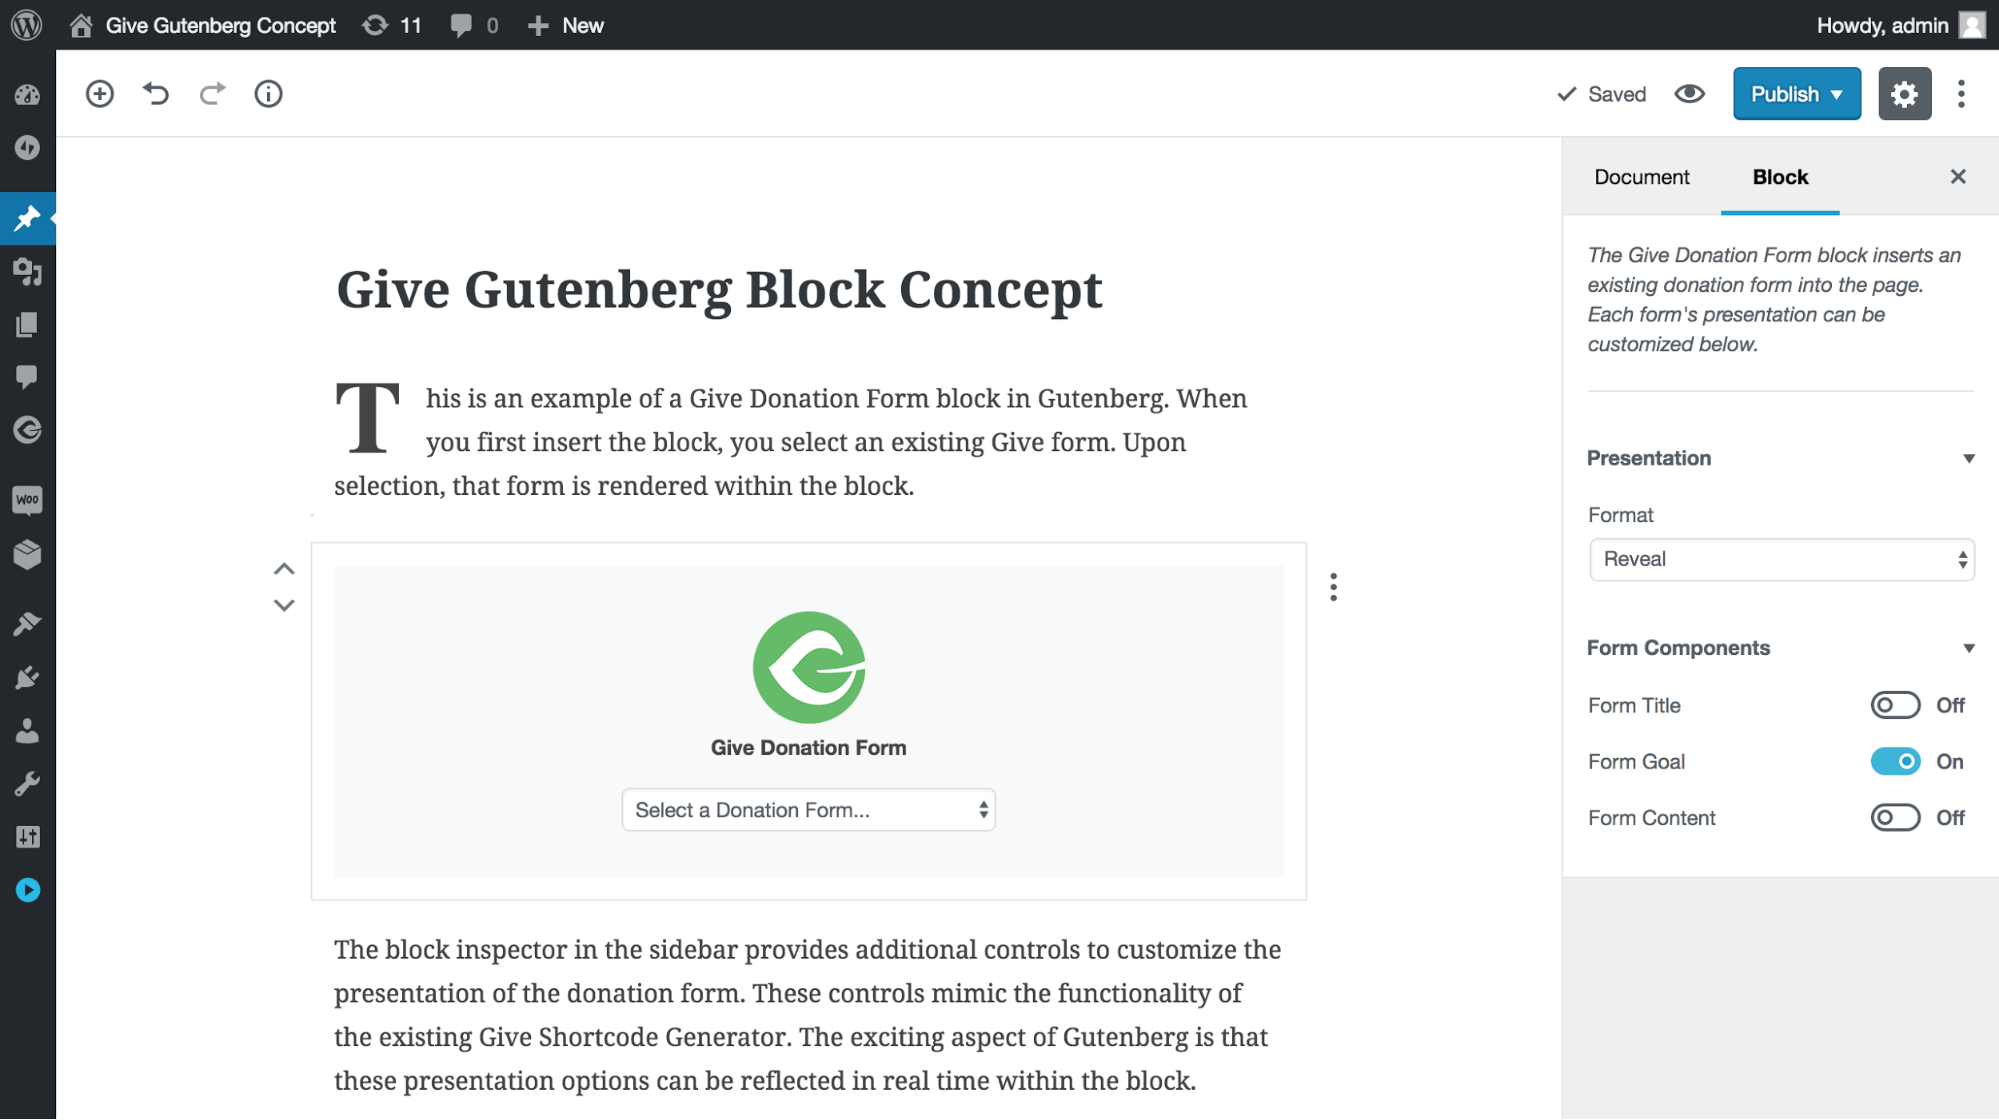 Image of Give Gutenberg Block Concept